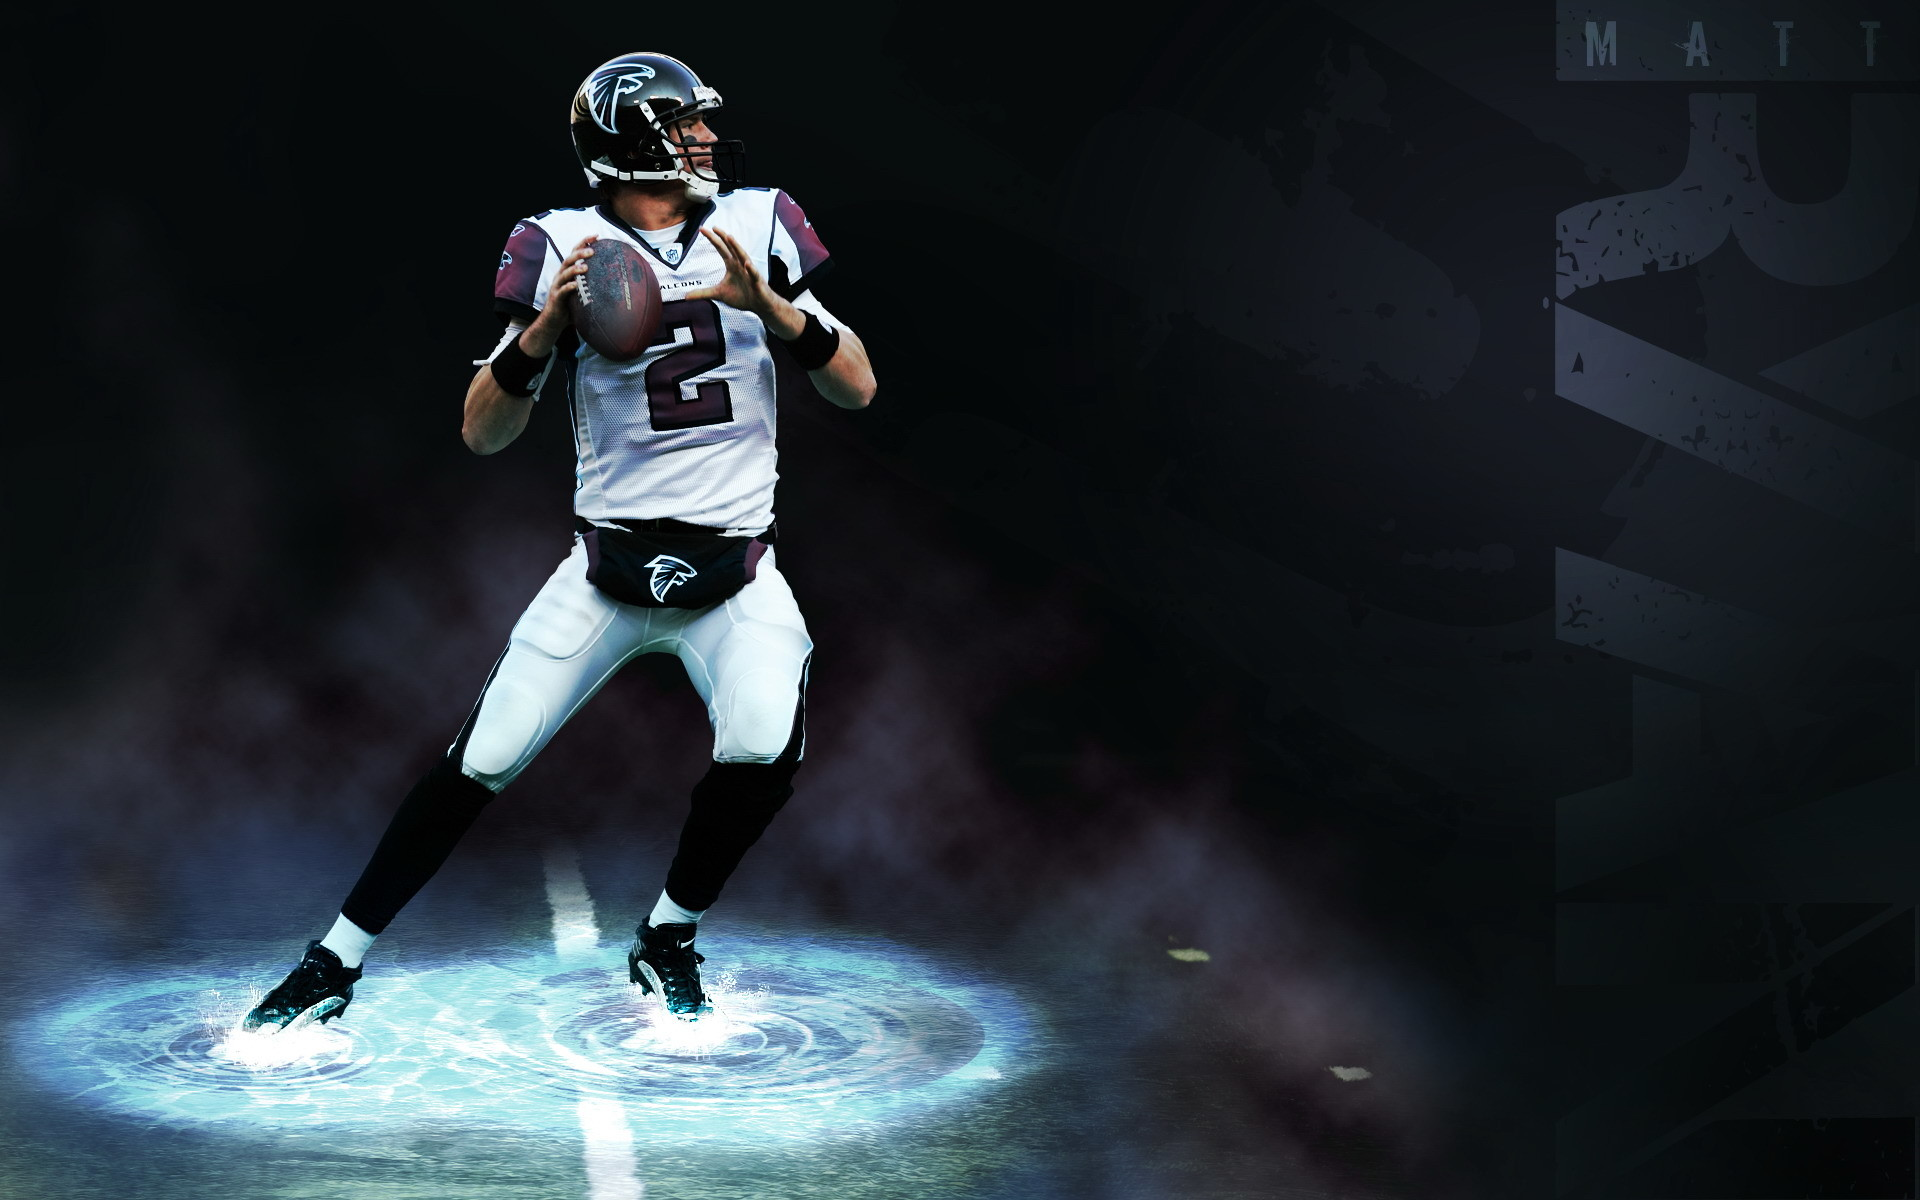 xpx Cool Football Wallpapers NFL